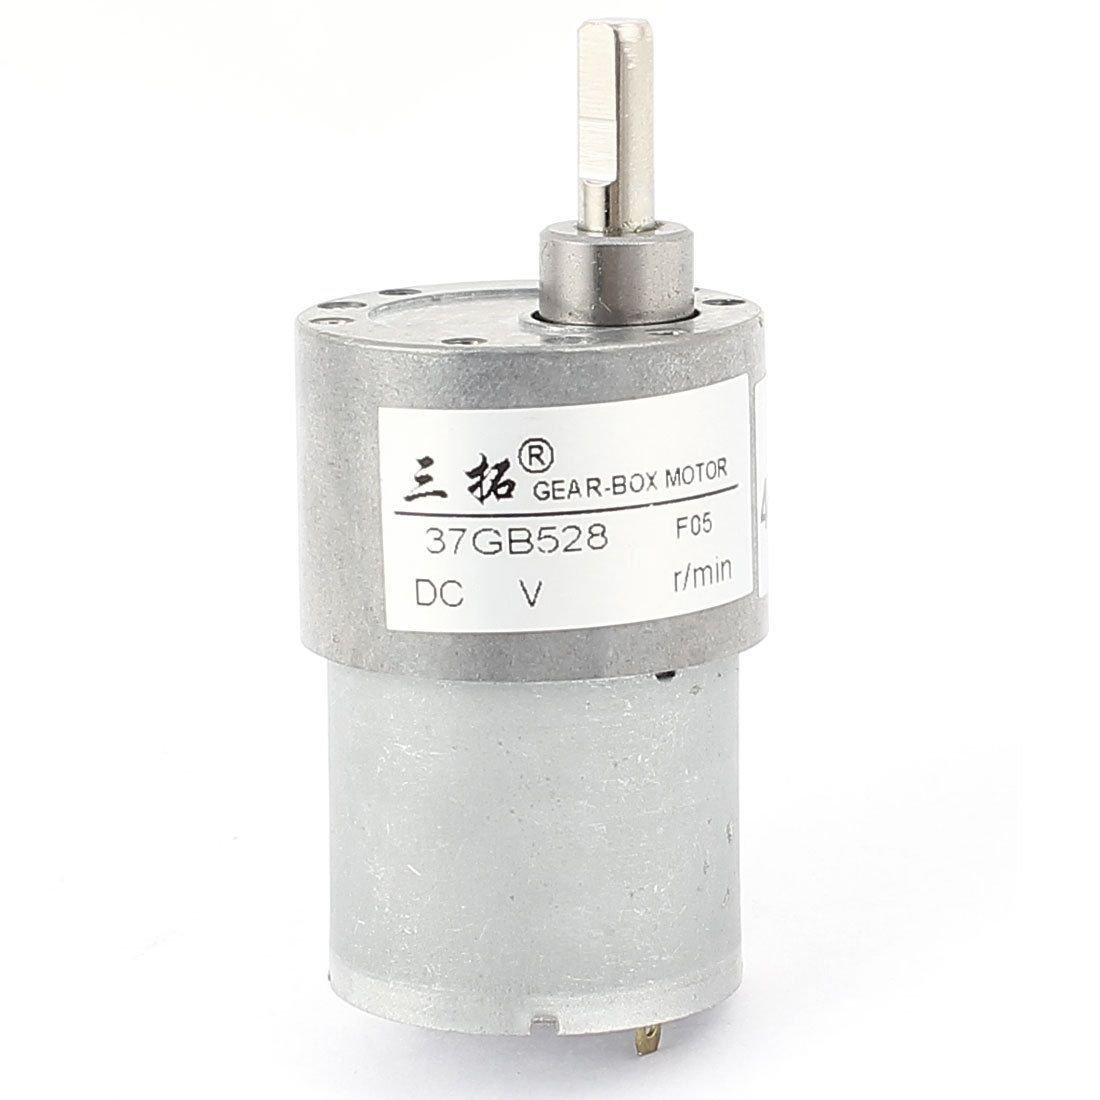 DC 12V 220RPM 0.2A 0.4KG.cm DC Gear Box Reducer Variable Speed Motor Reversible